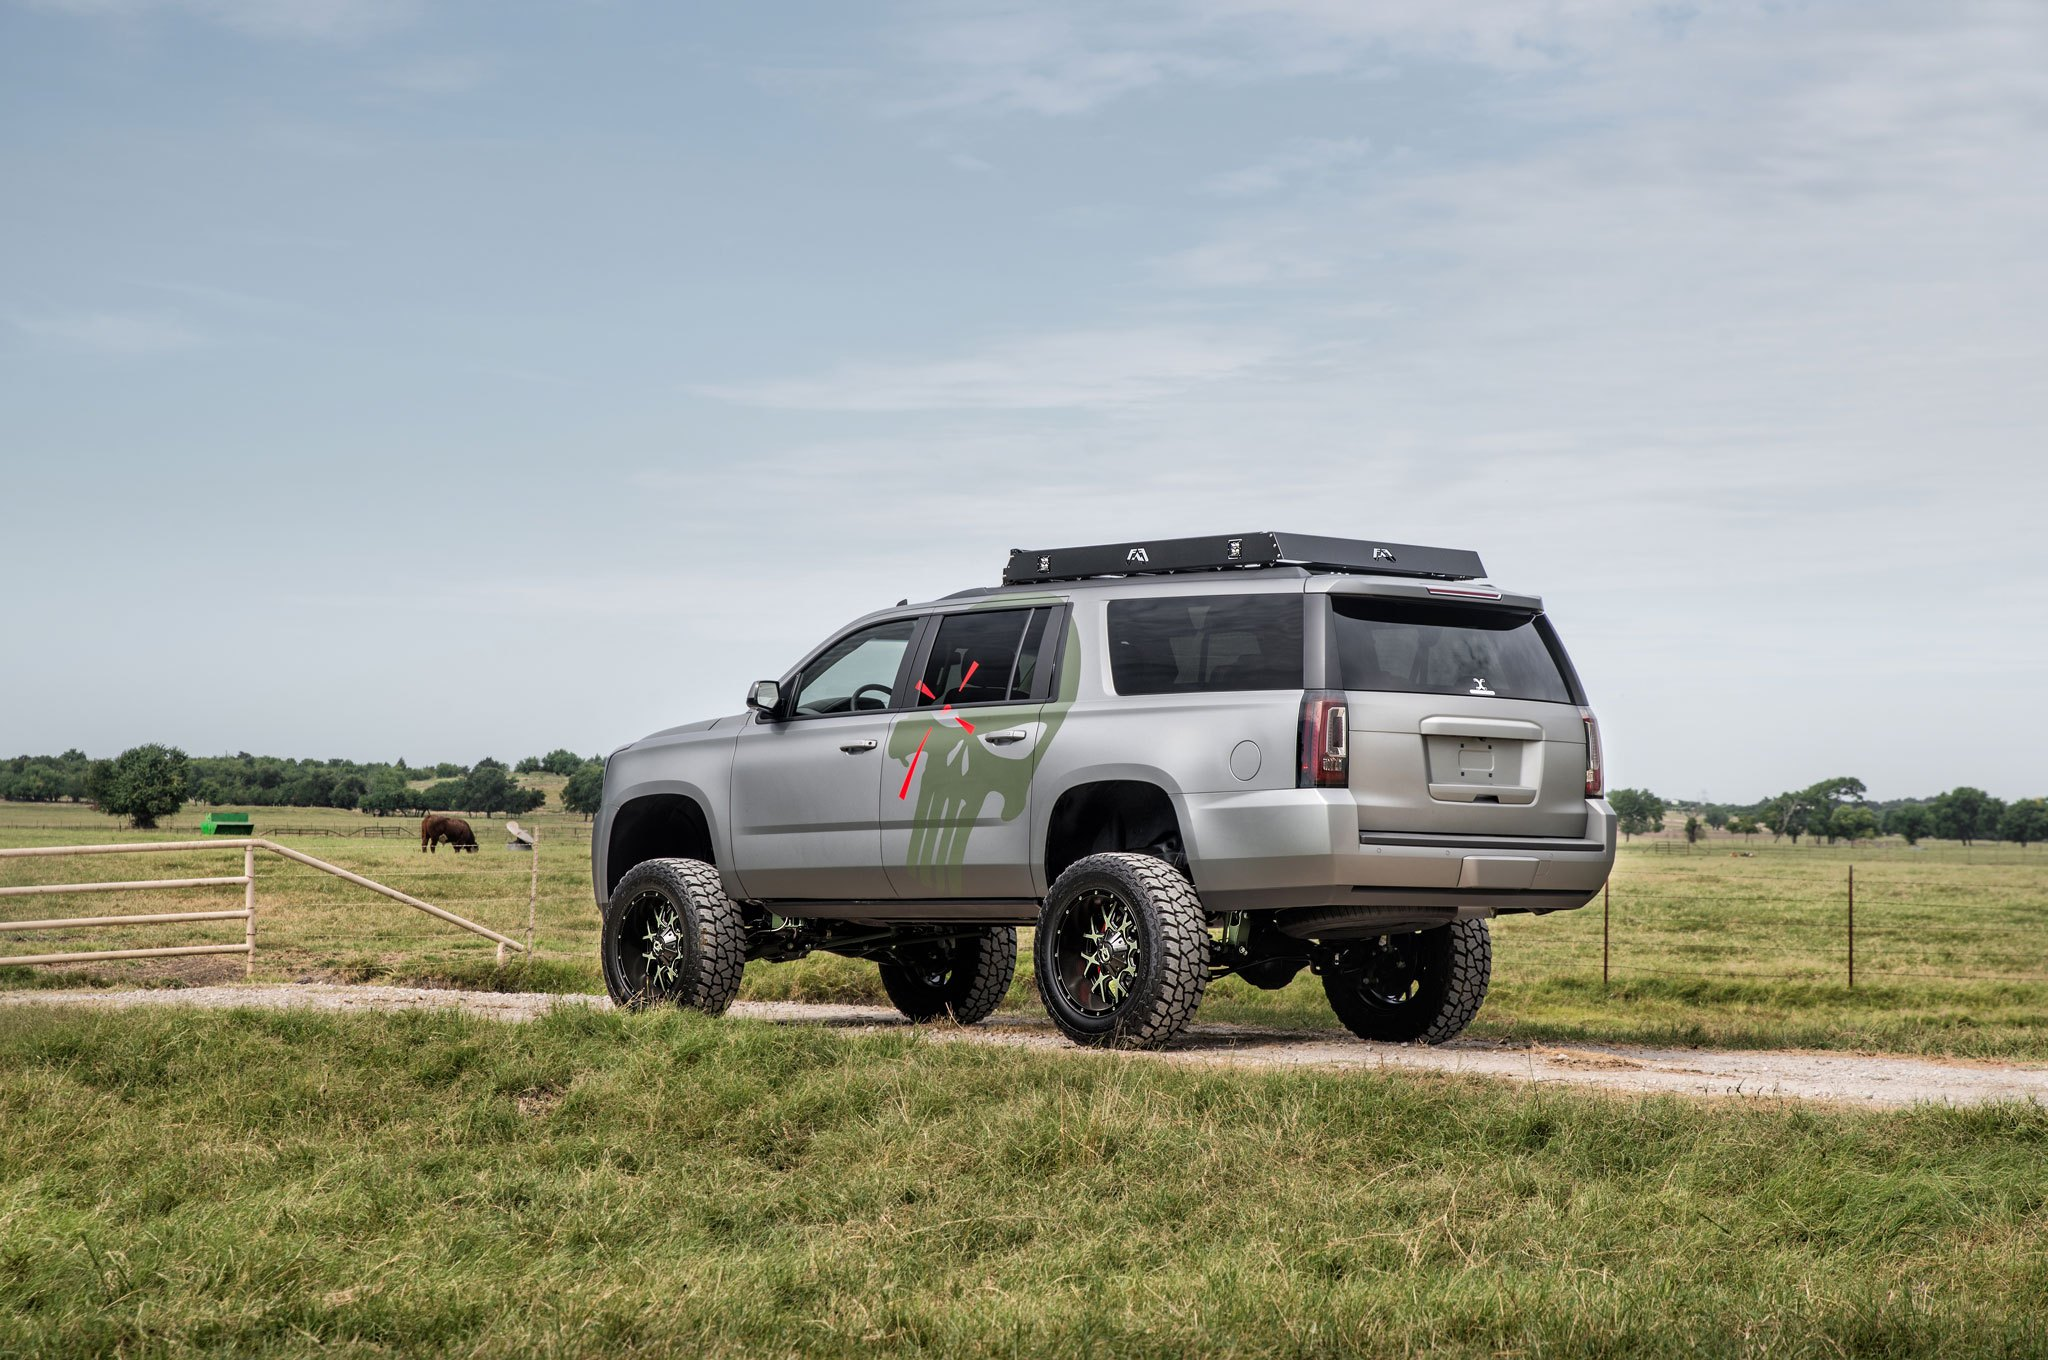 Exceptional Lifted Gmc Yukon On Off Road Wheels   Photo By Complete Customs